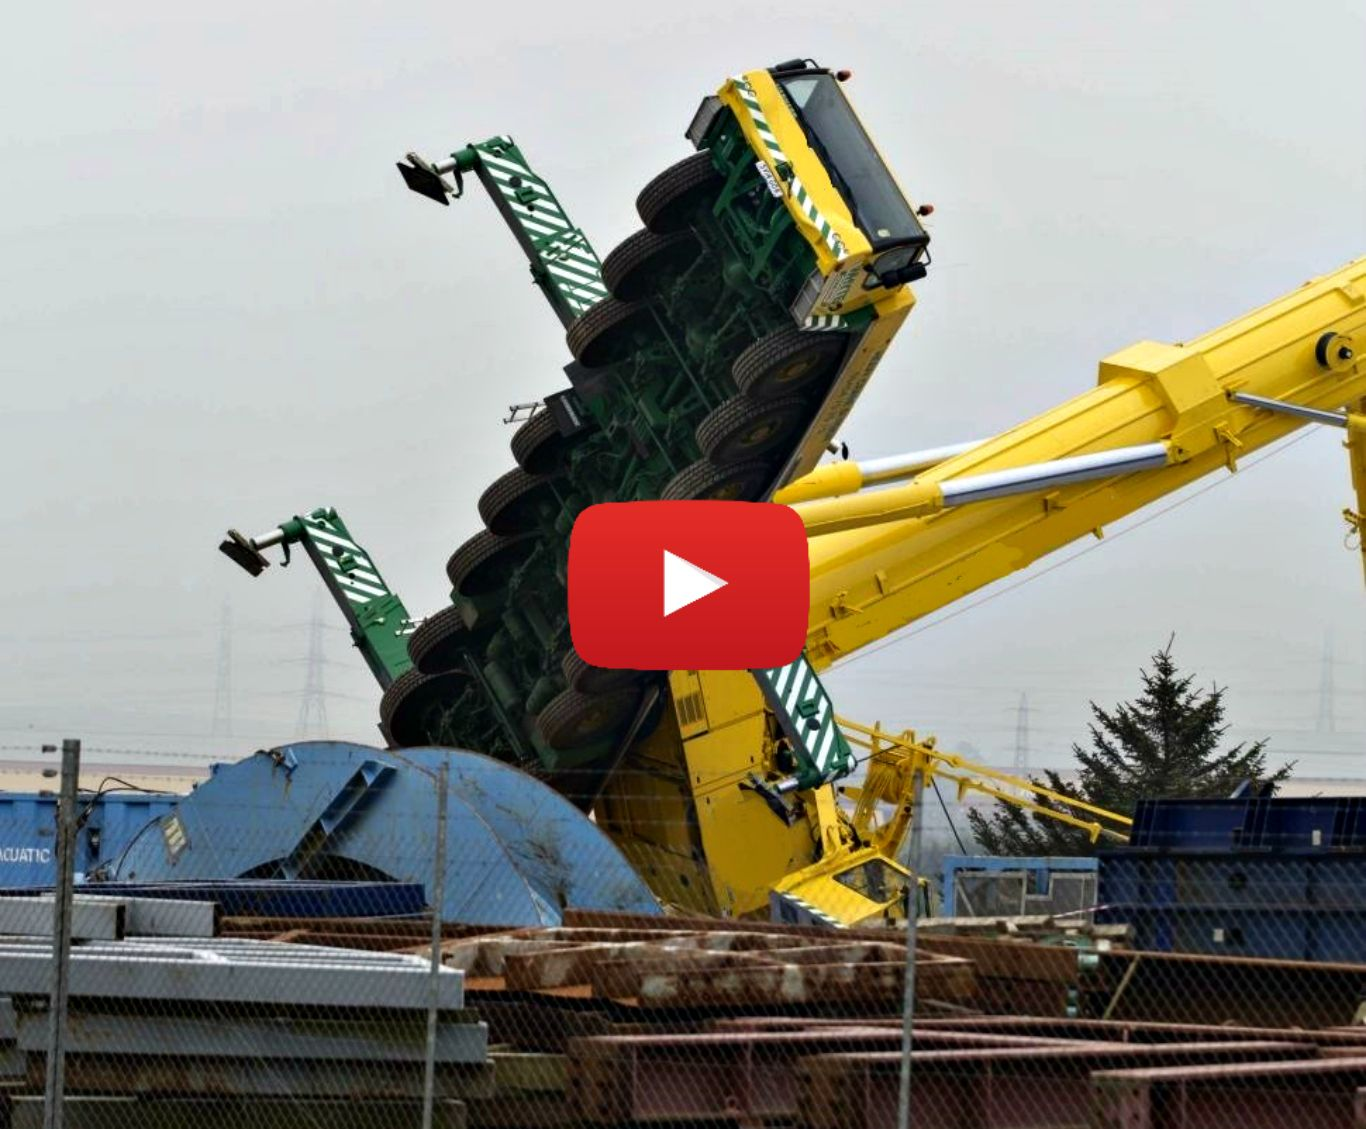 Crane Crashes. Large construction equipment fail. Share With Your Friends Related More Videos ...